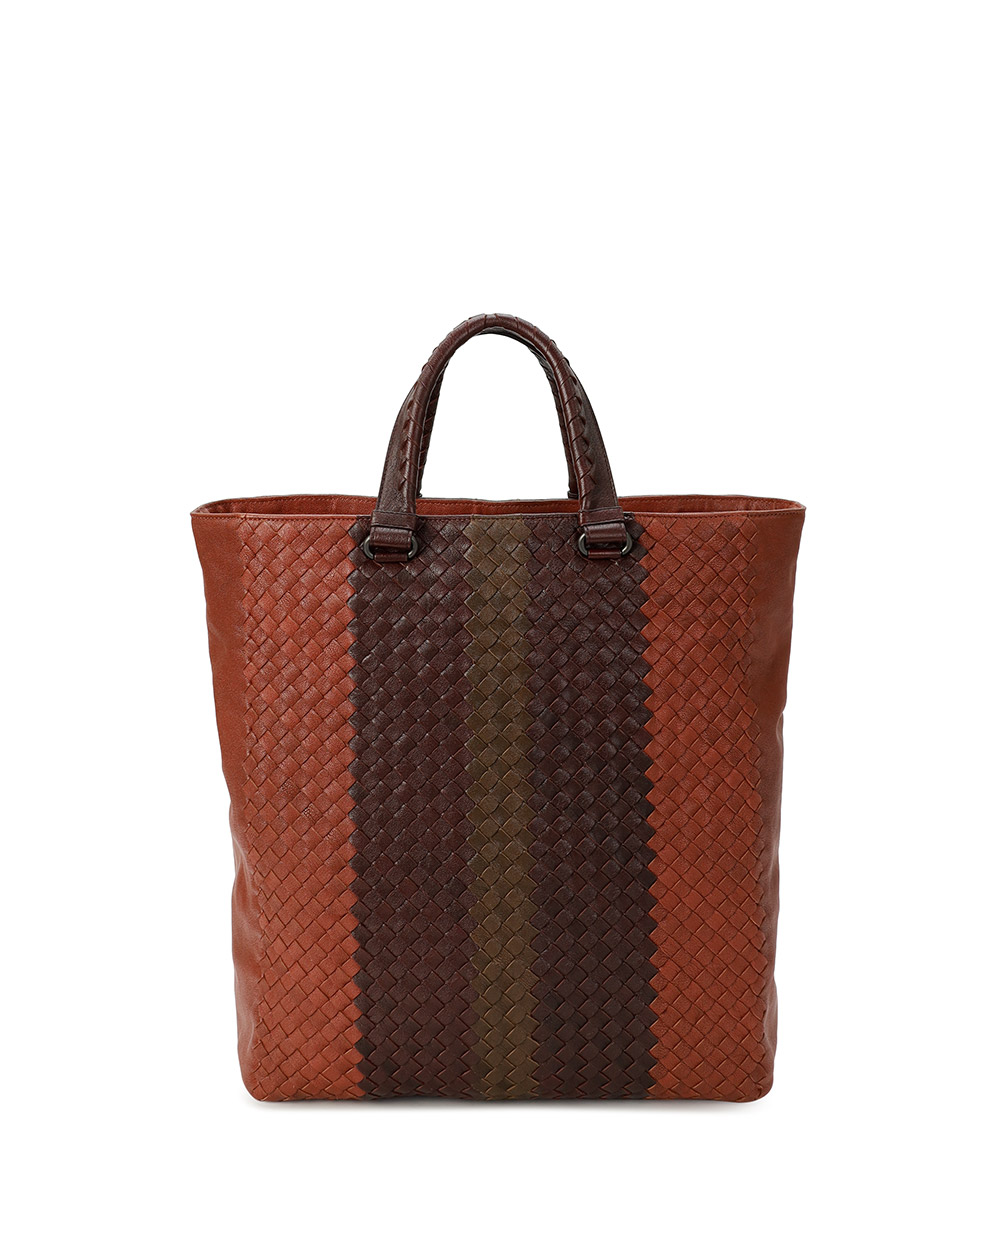 Woven Leather Handbag 4